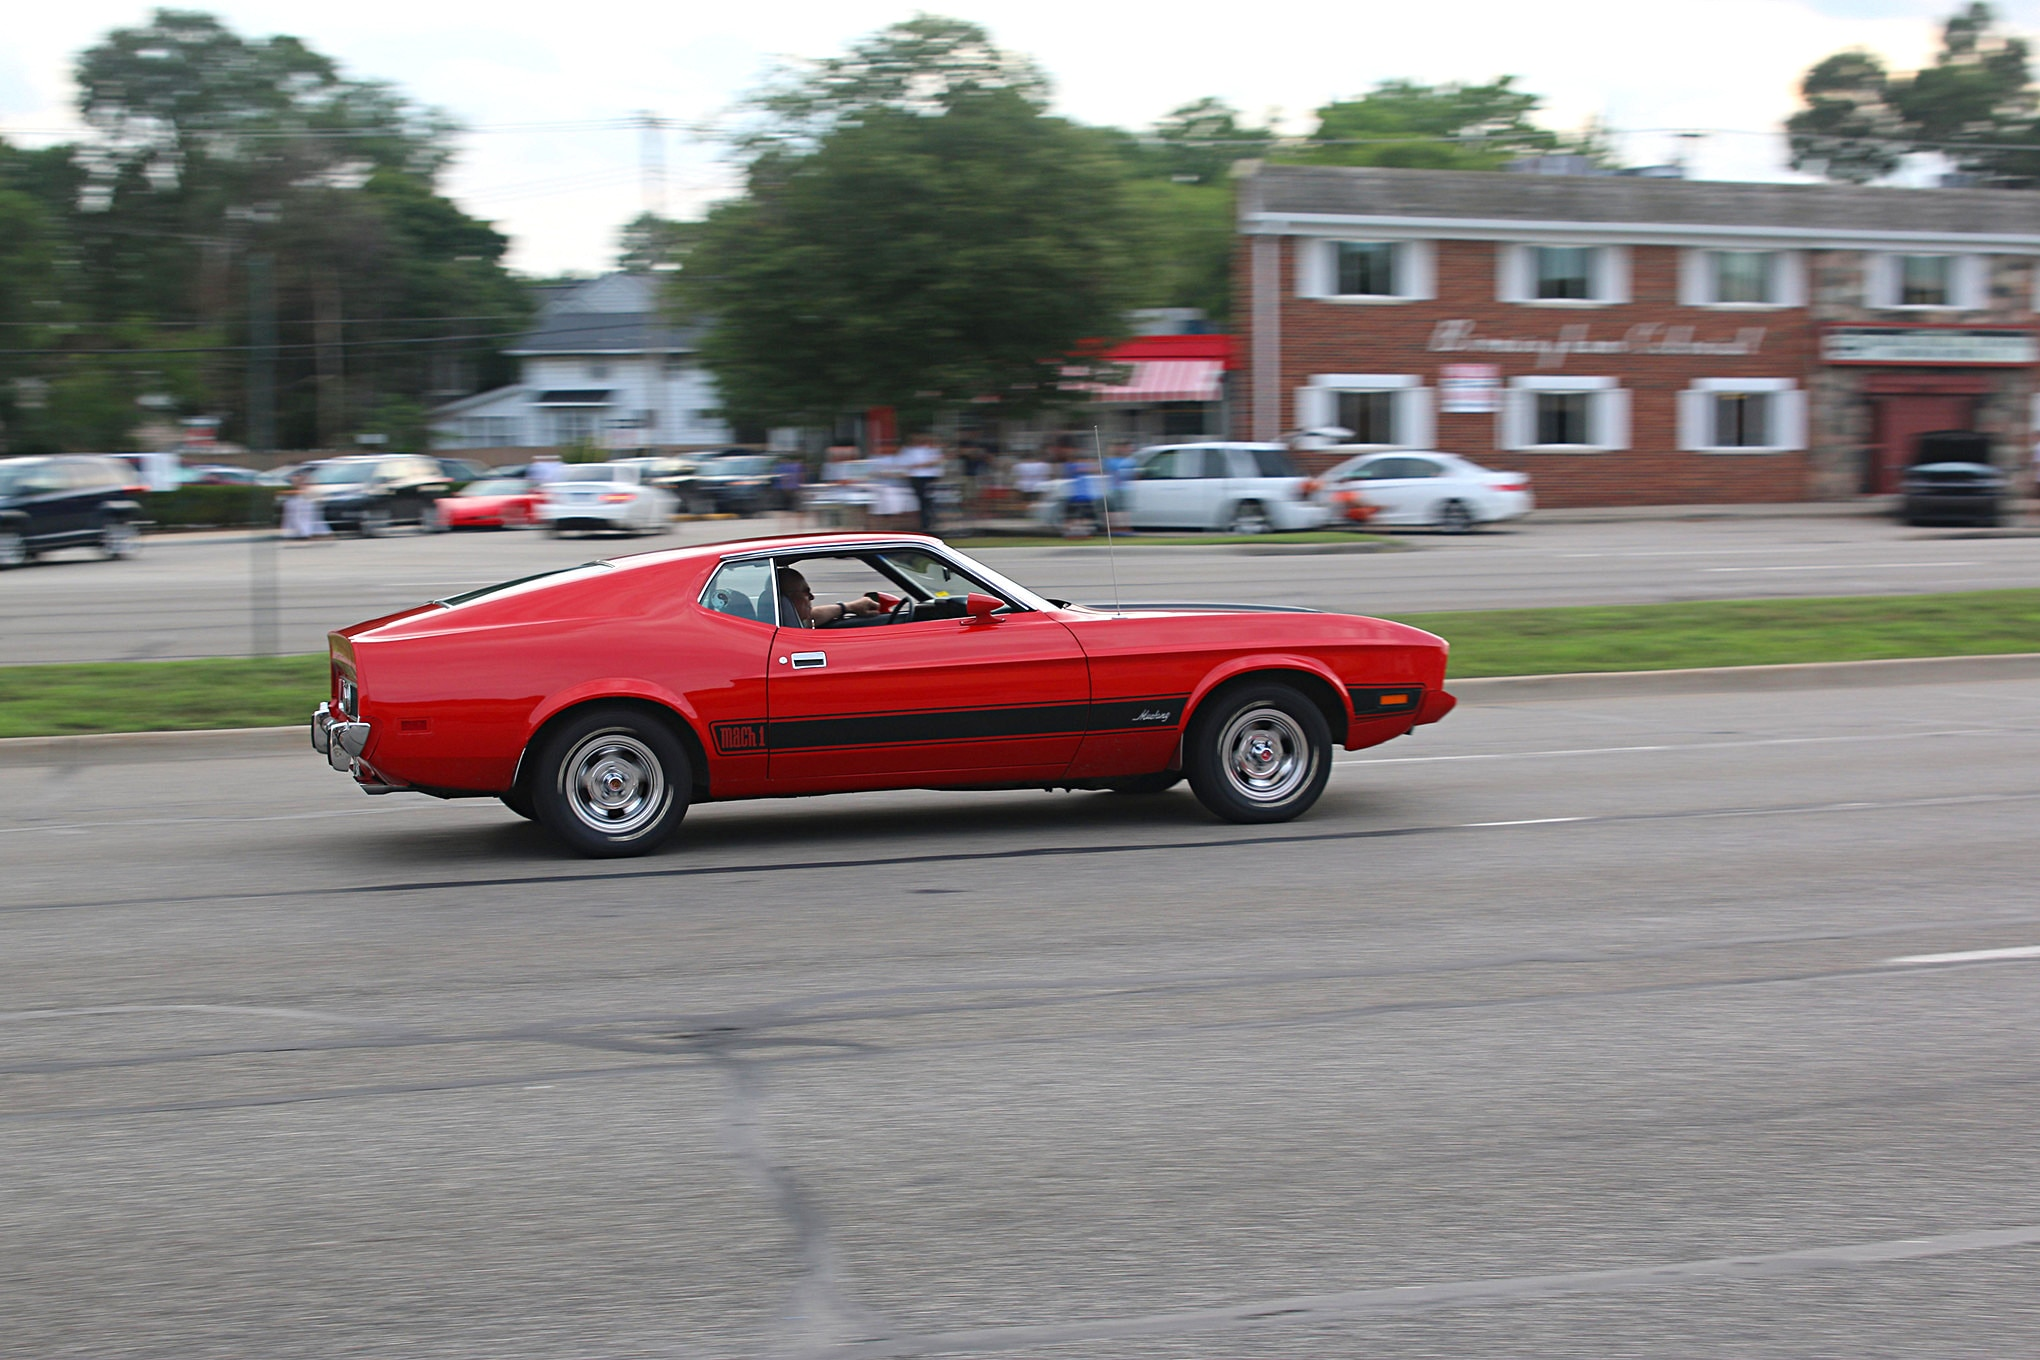 2016 Woodward Dream Cruise Mustangs 049